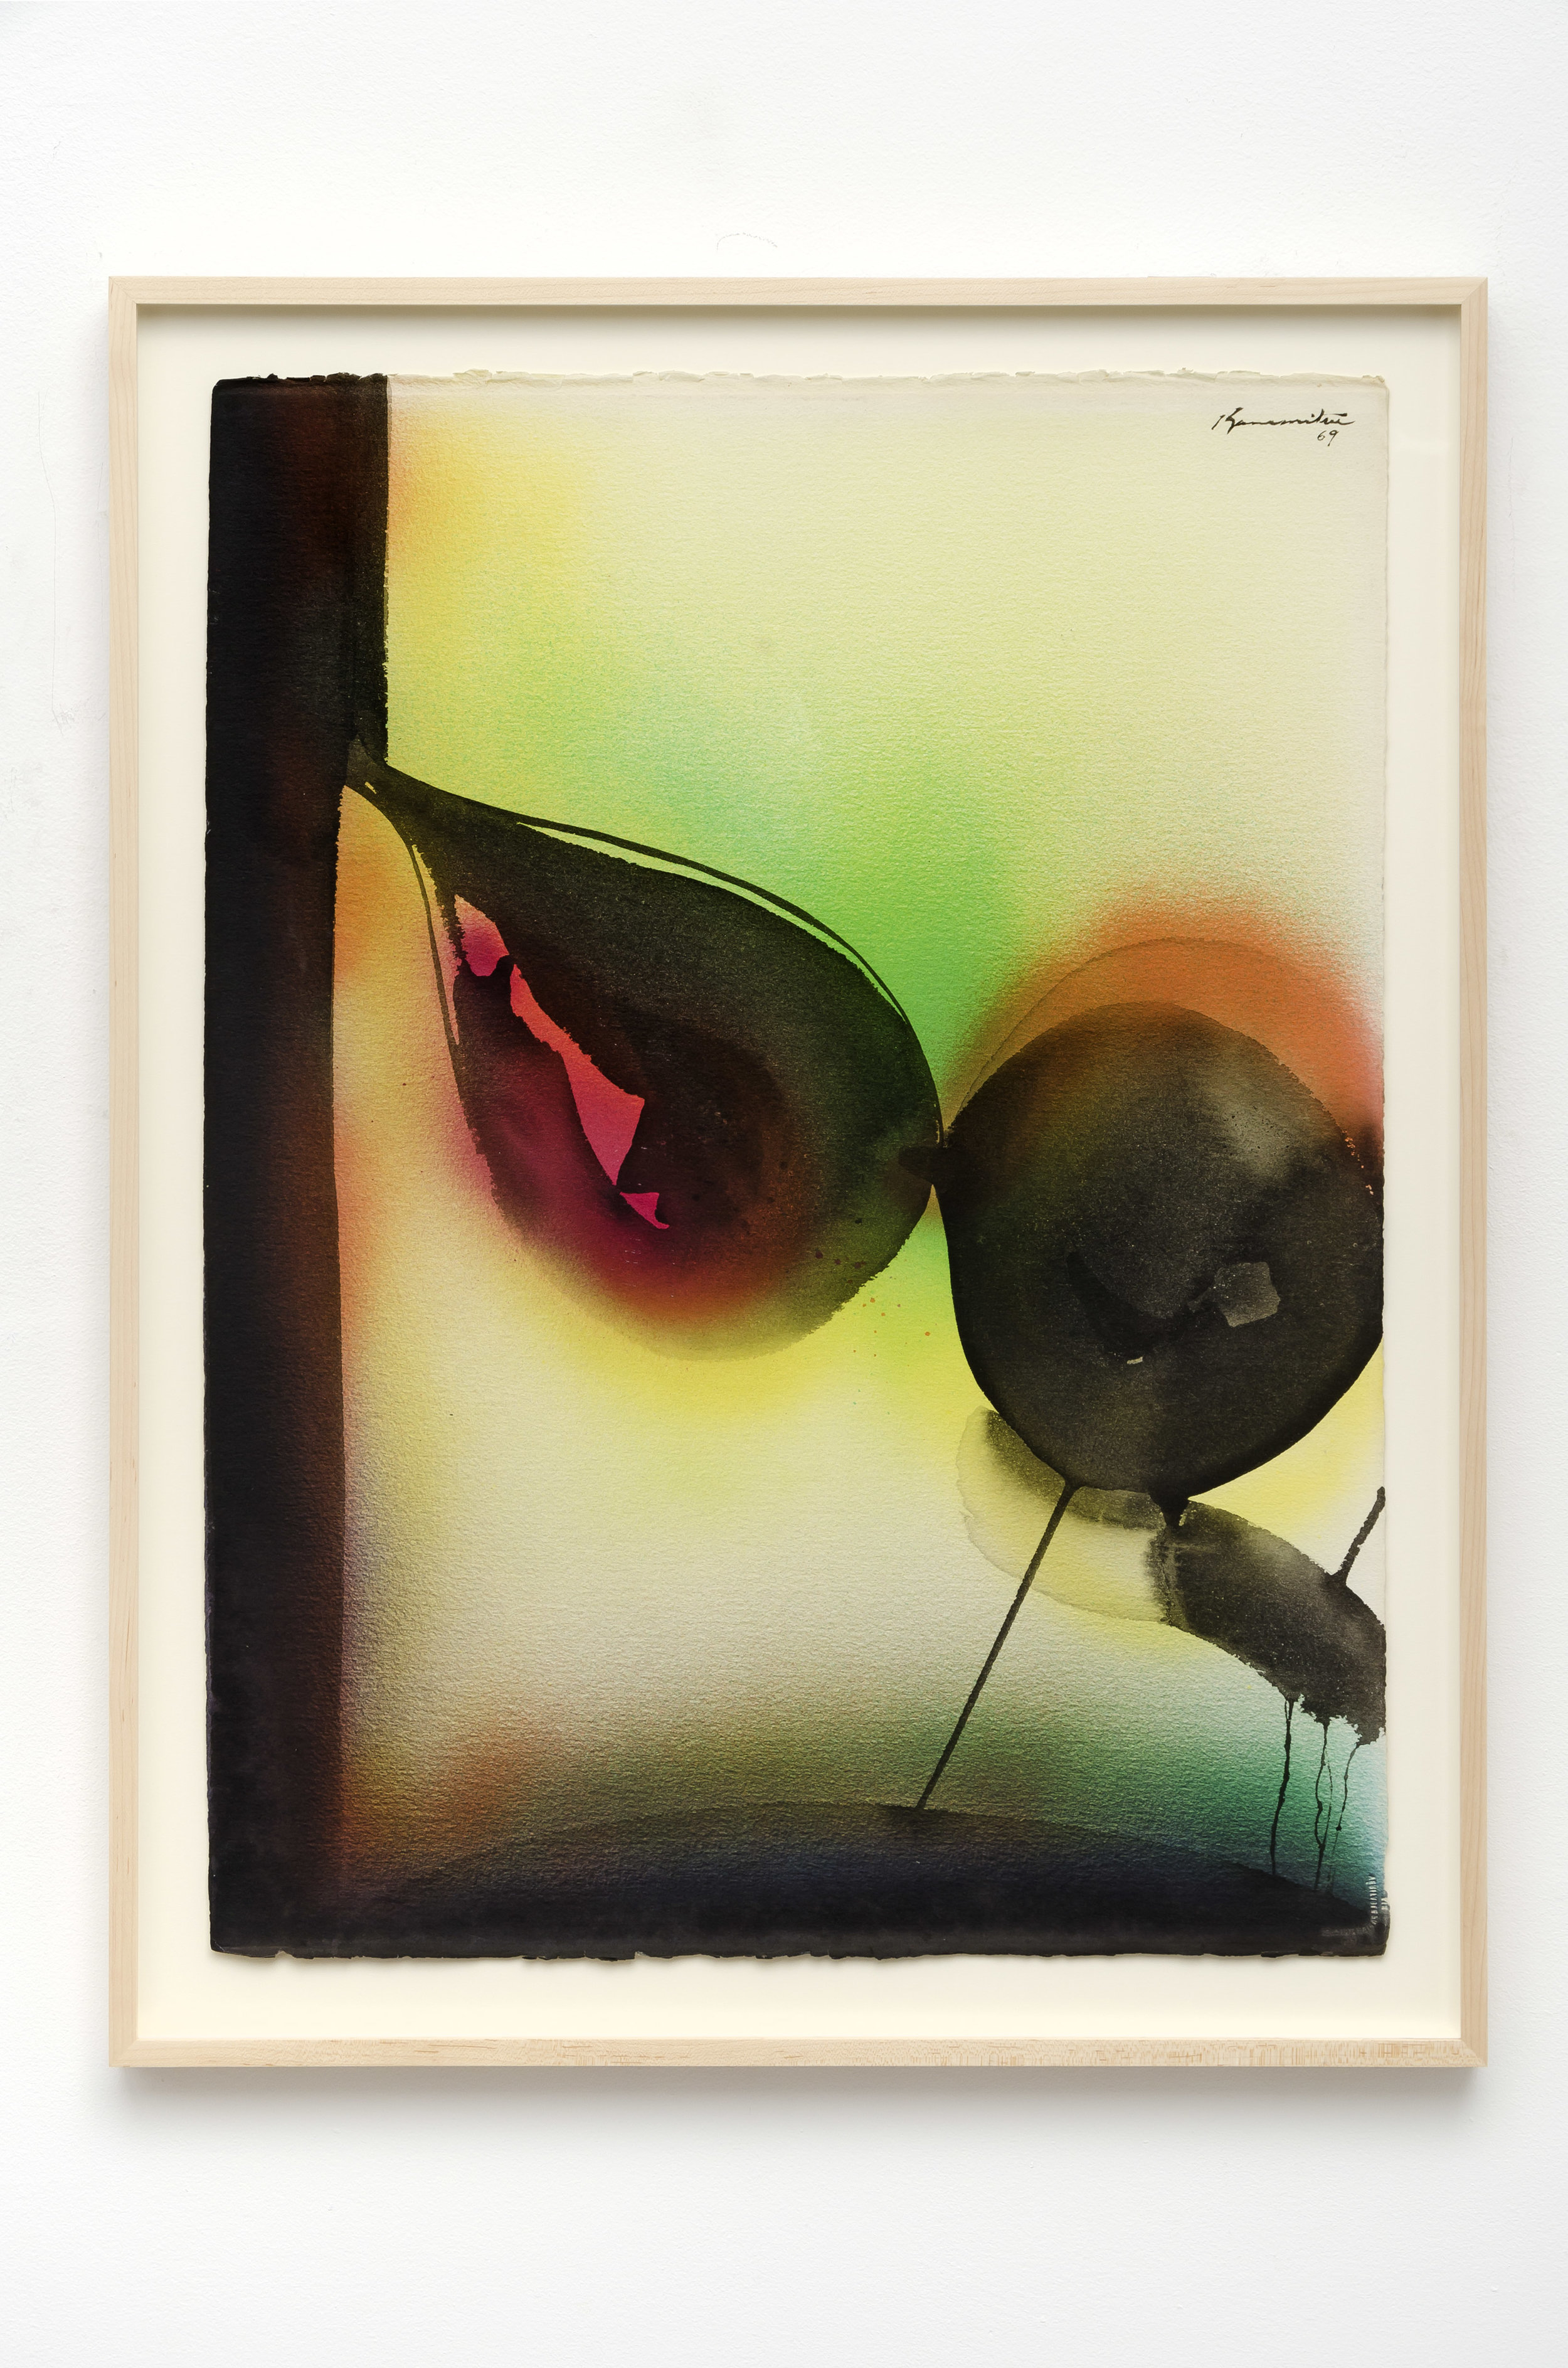 Untitled   1969  sumi and watercolor on paper  34.25 x 26.25 inches, 87 x 66.7 centimeters